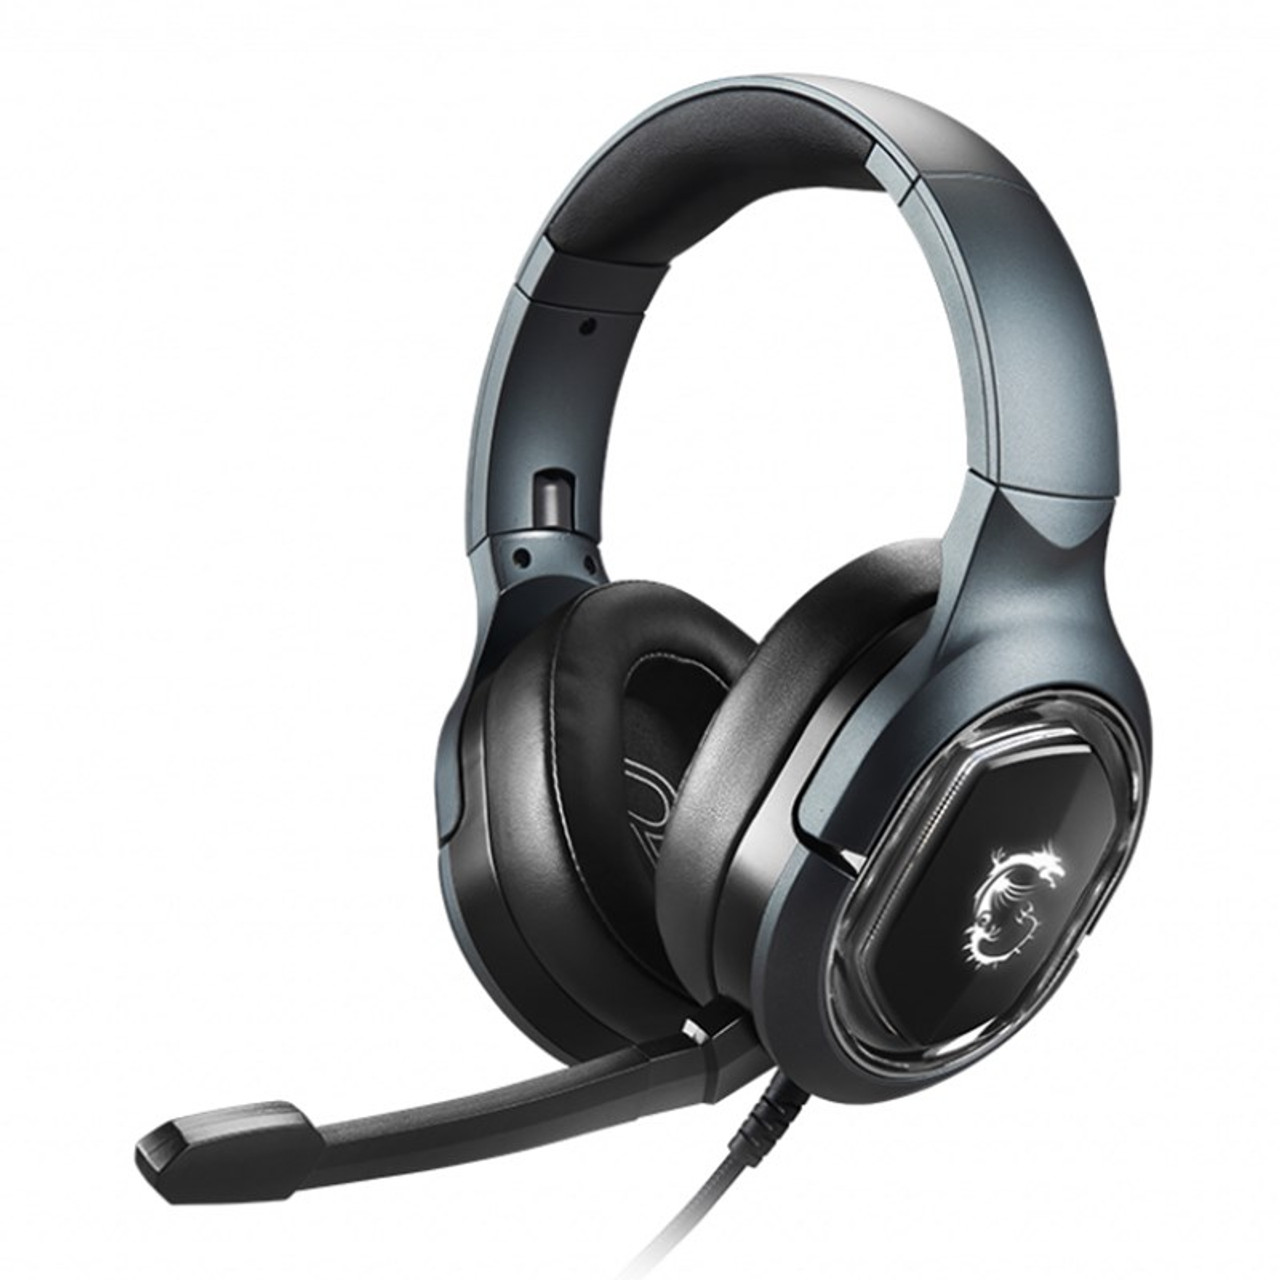 Image for MSI Immerse GH50 Virtual 7.1 USB Gaming Headset CX Computer Superstore